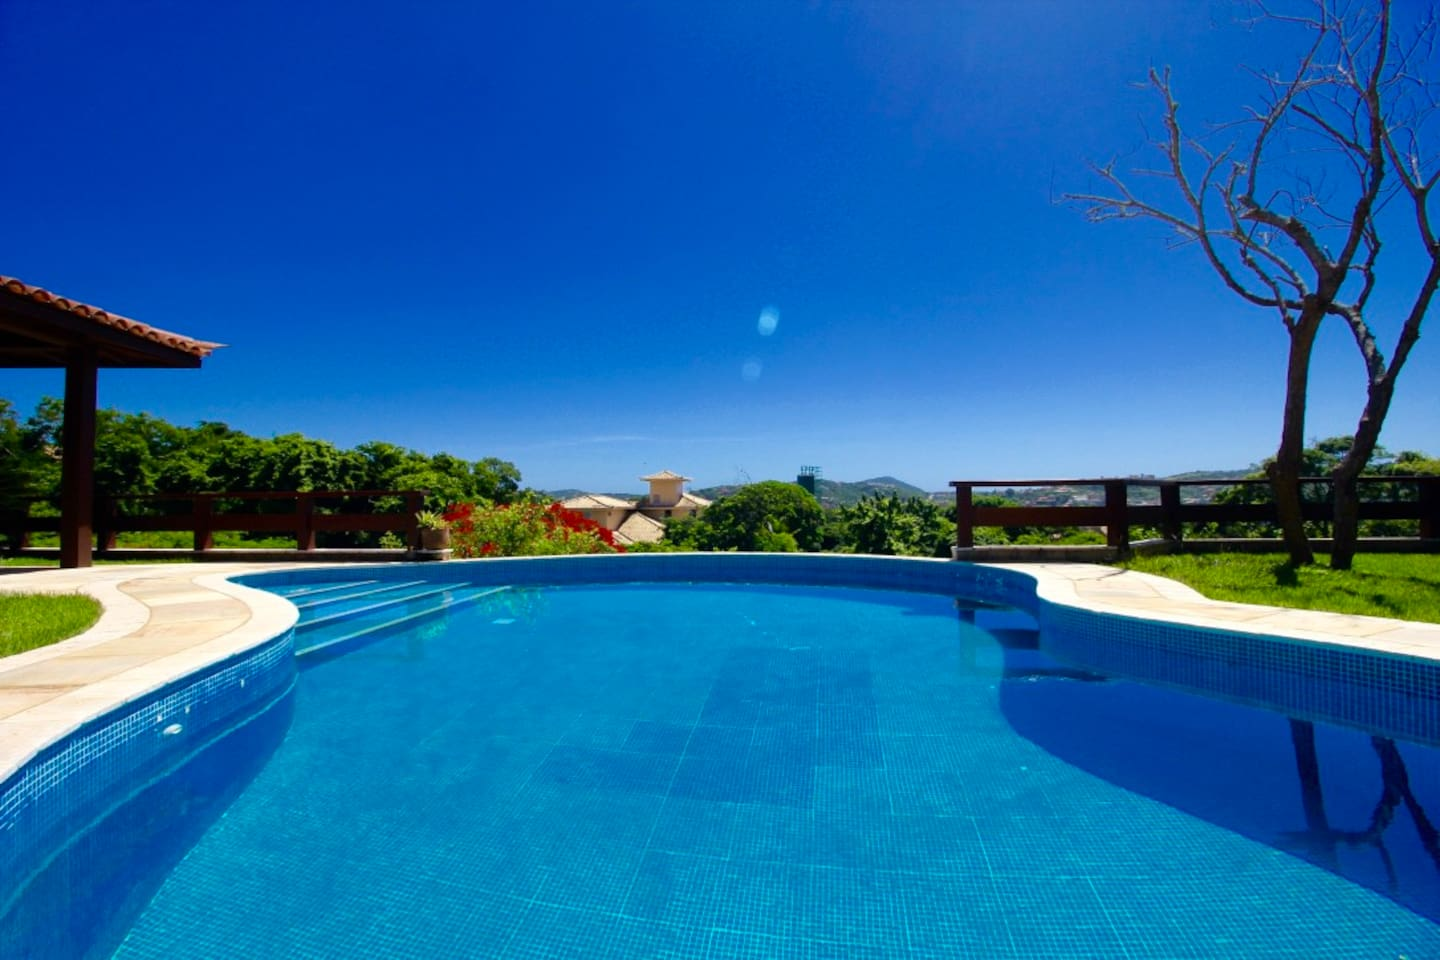 Private swimming pool. The house is built over 860m2 (9256.96 sf.) of land